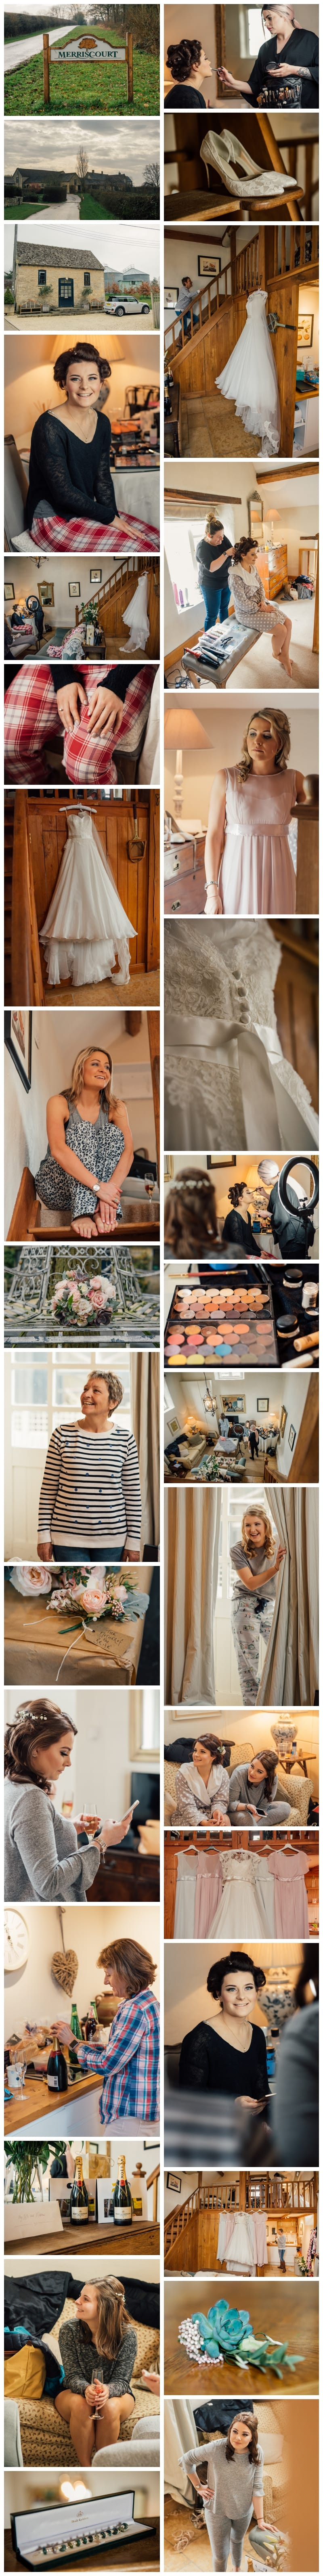 Merriscourt Pump House Bridal Preparation